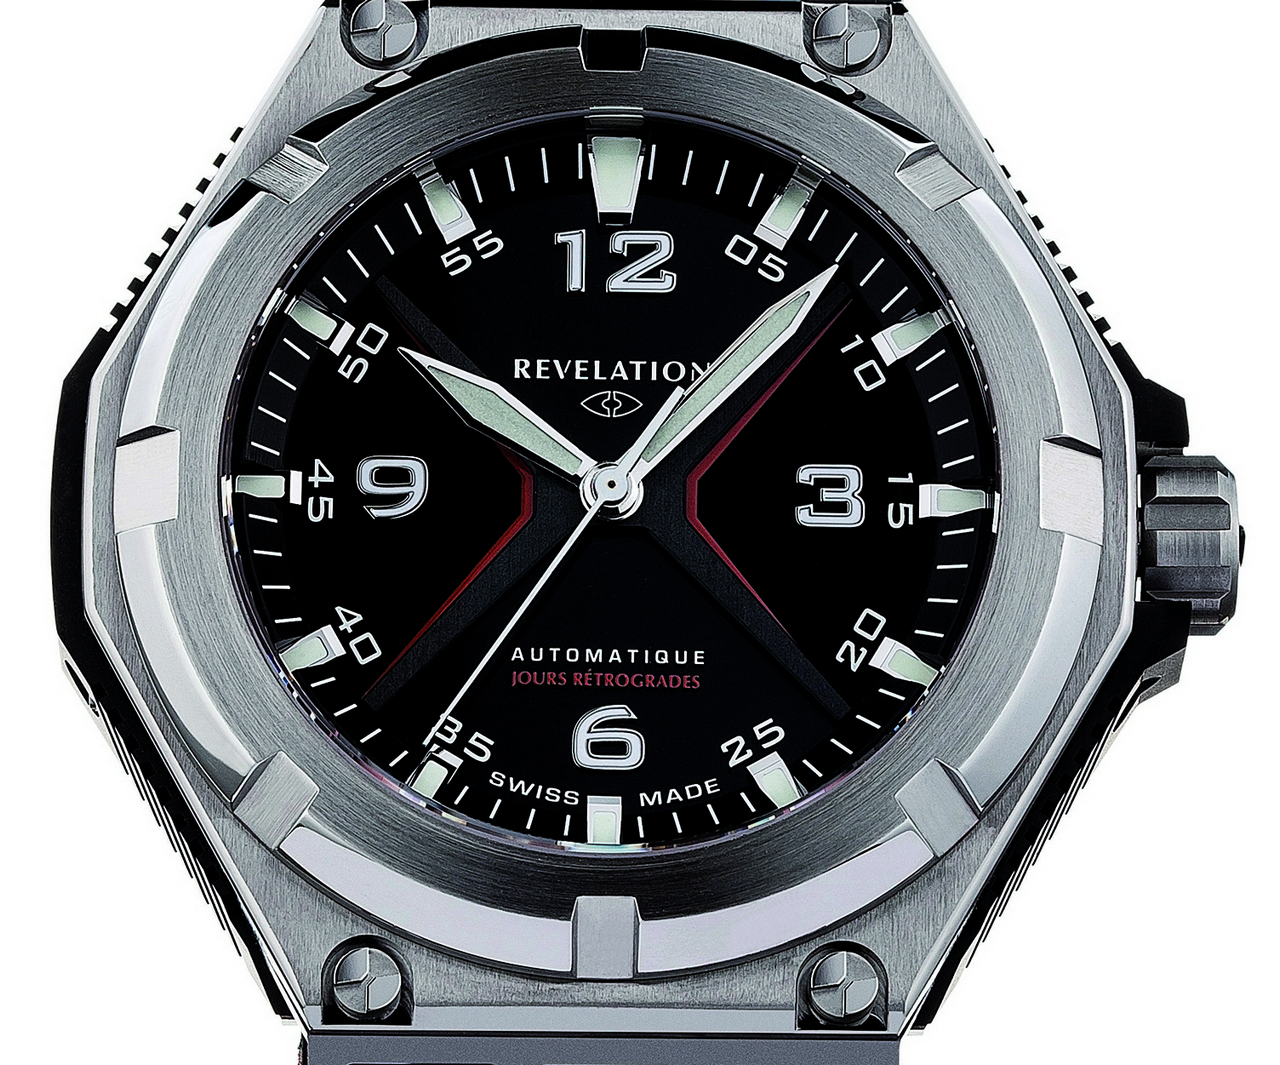 anteprima-baselworld-2015-revelation-r07-legend-magical-watch-dial_0-100_3